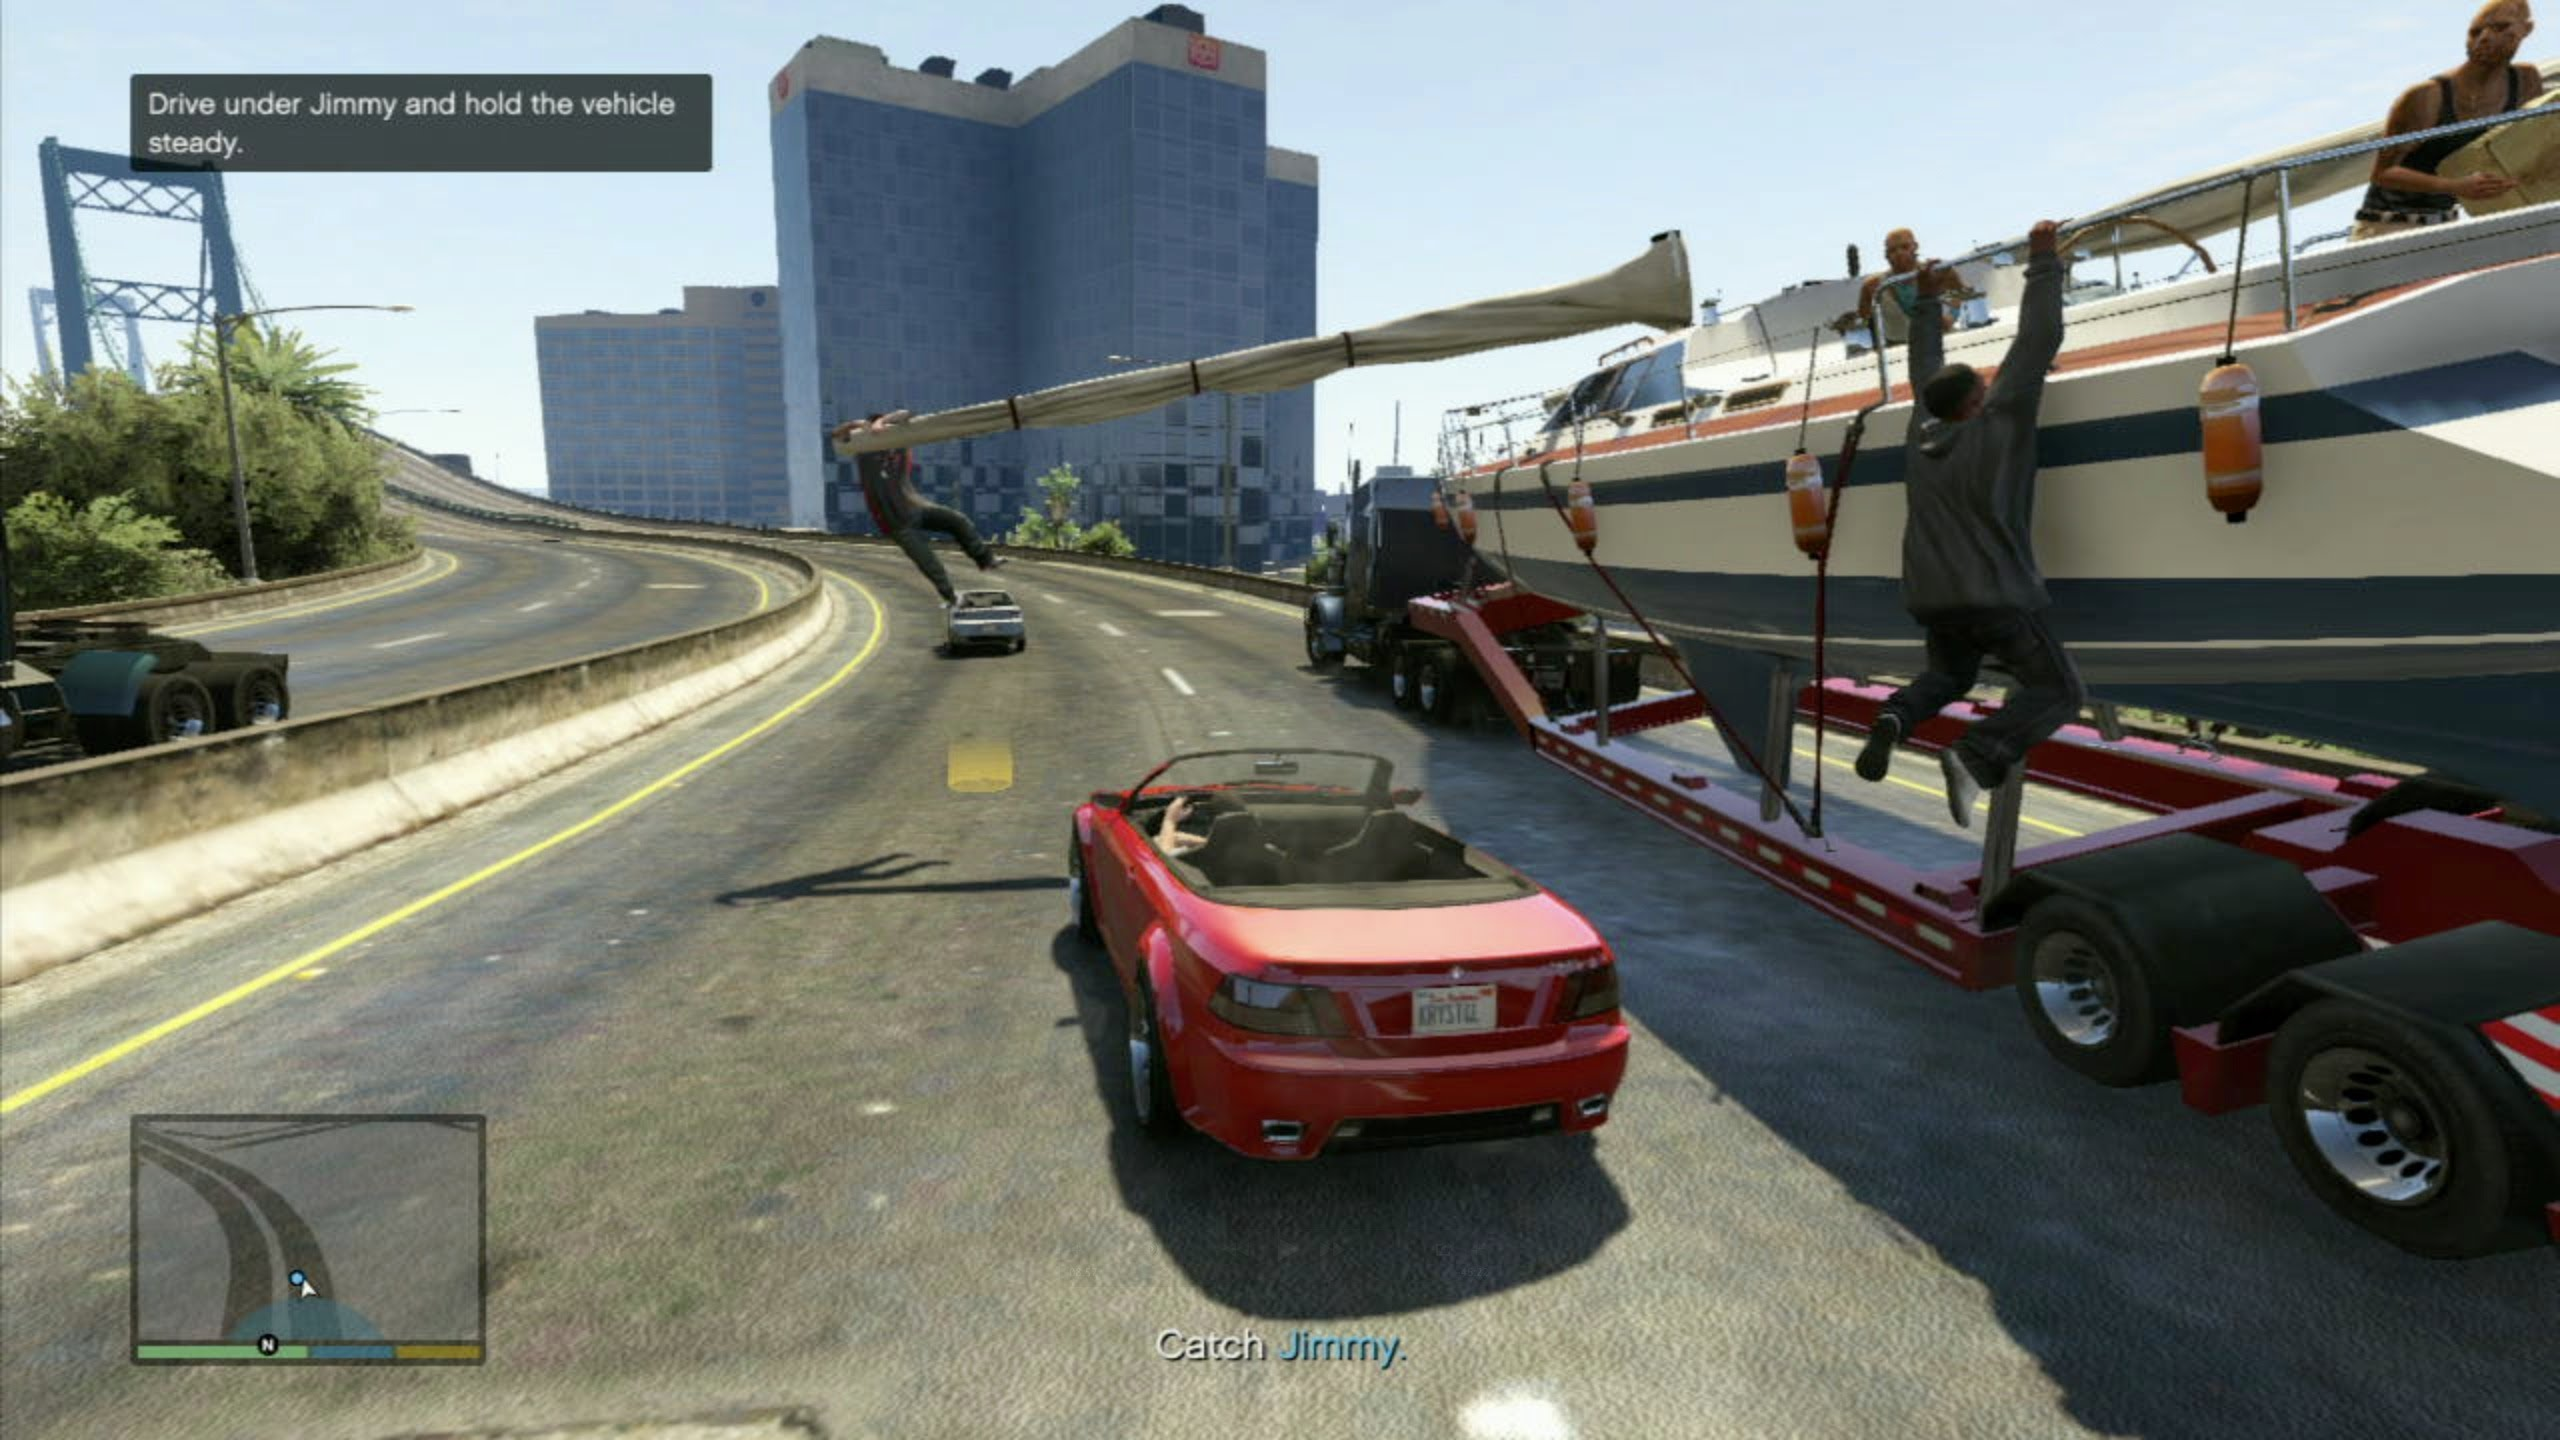 Grand Theft Auto V With All Updates free Download PC Game (Full Version)